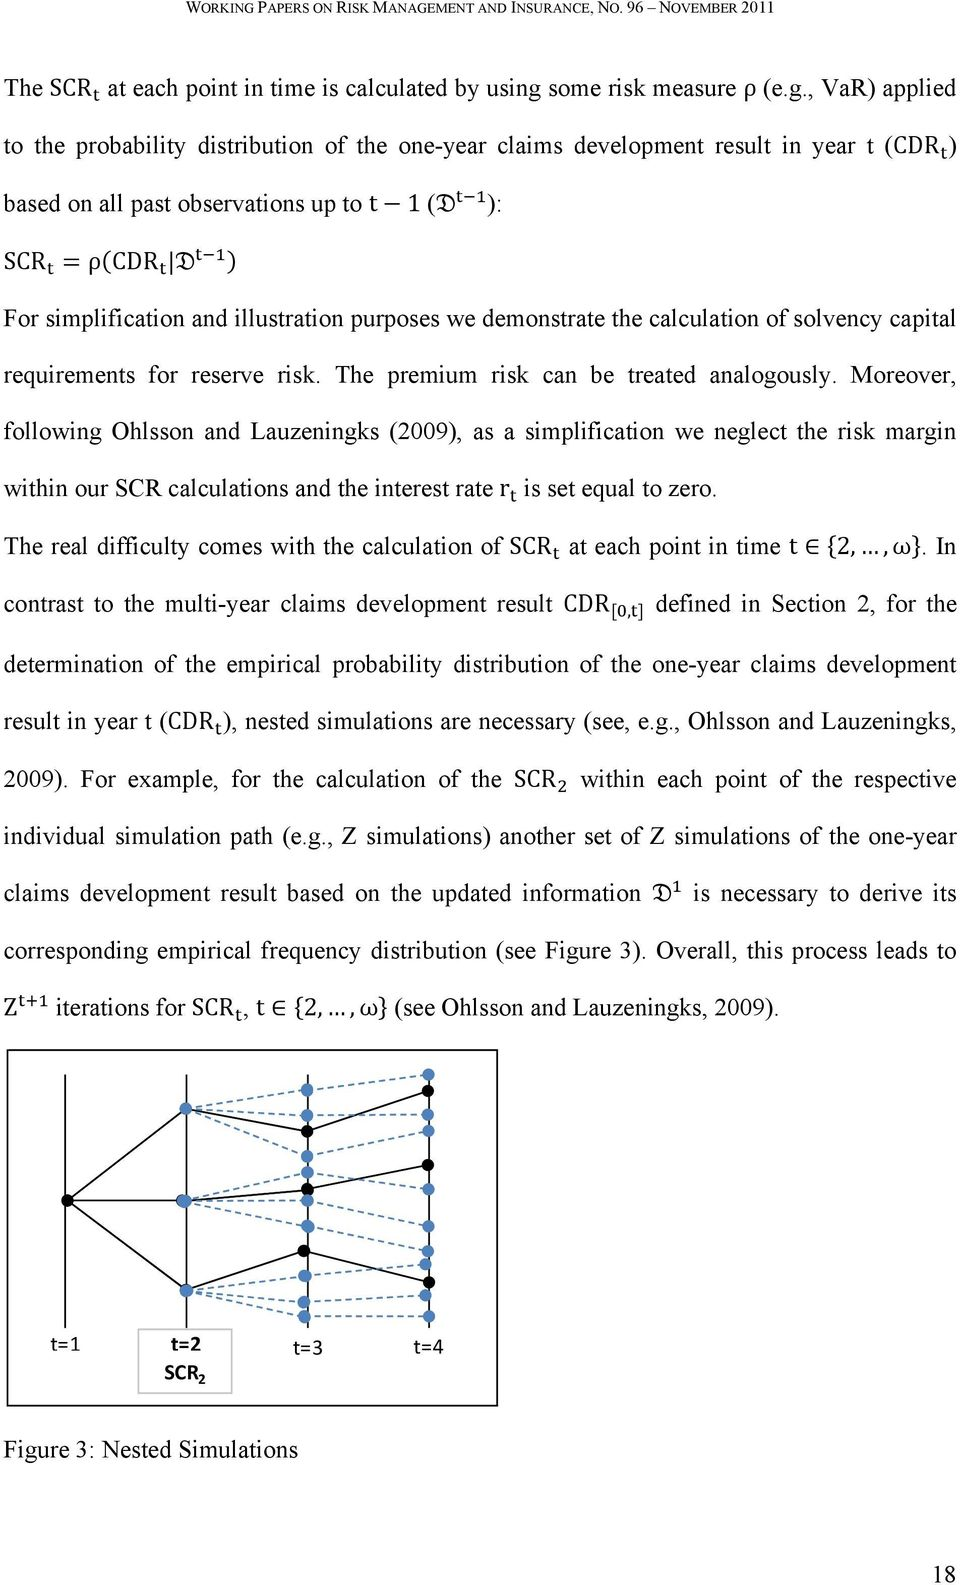 , VaR) applied to the probability distribution of the one-year claims development result in year t (CDR ) based on all past observations up to t1 ( ): SCR ρcdr For simplification and illustration